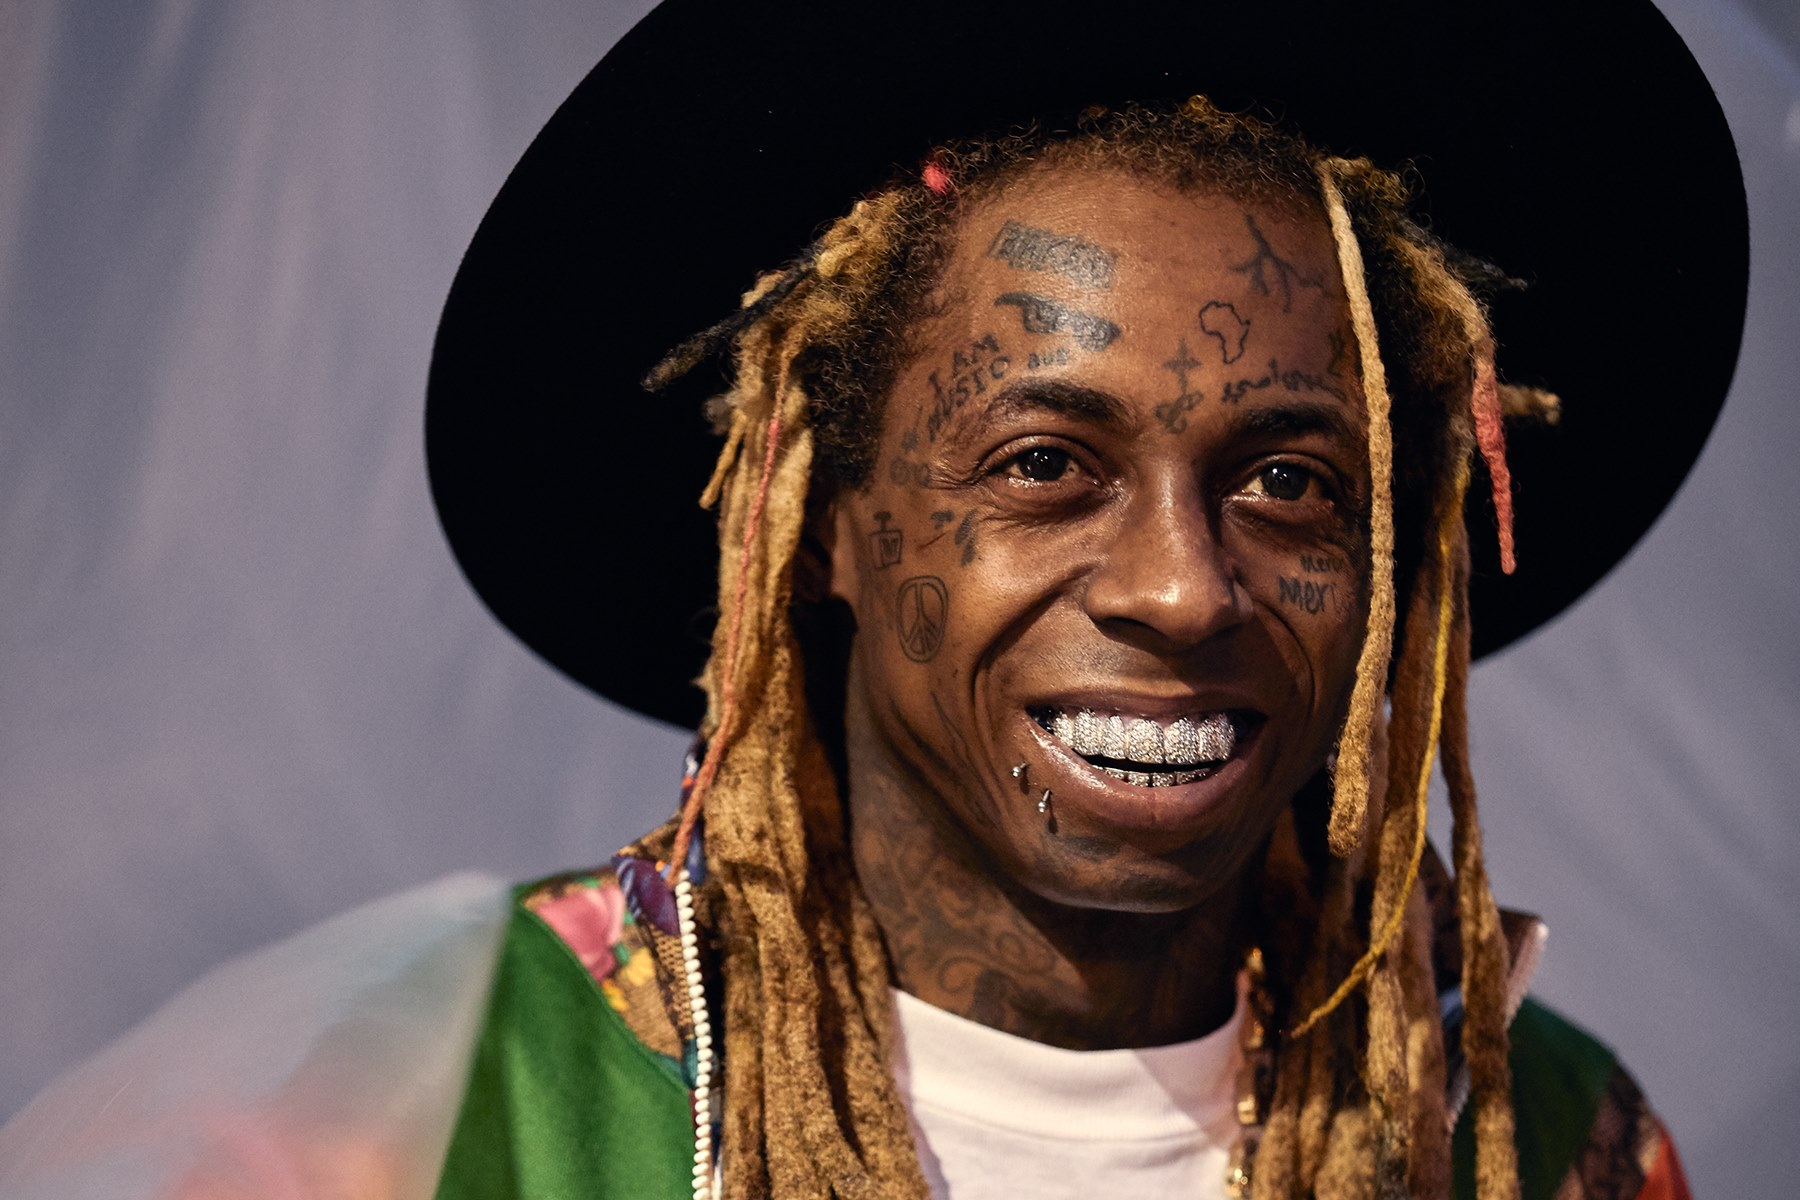 """lil-wayne-lands-in-trouble-for-making-this-controversial-comment-about-the-killing-of-george-floyd-by-derek-chauvin-who-kneeled-on-his-neck"""